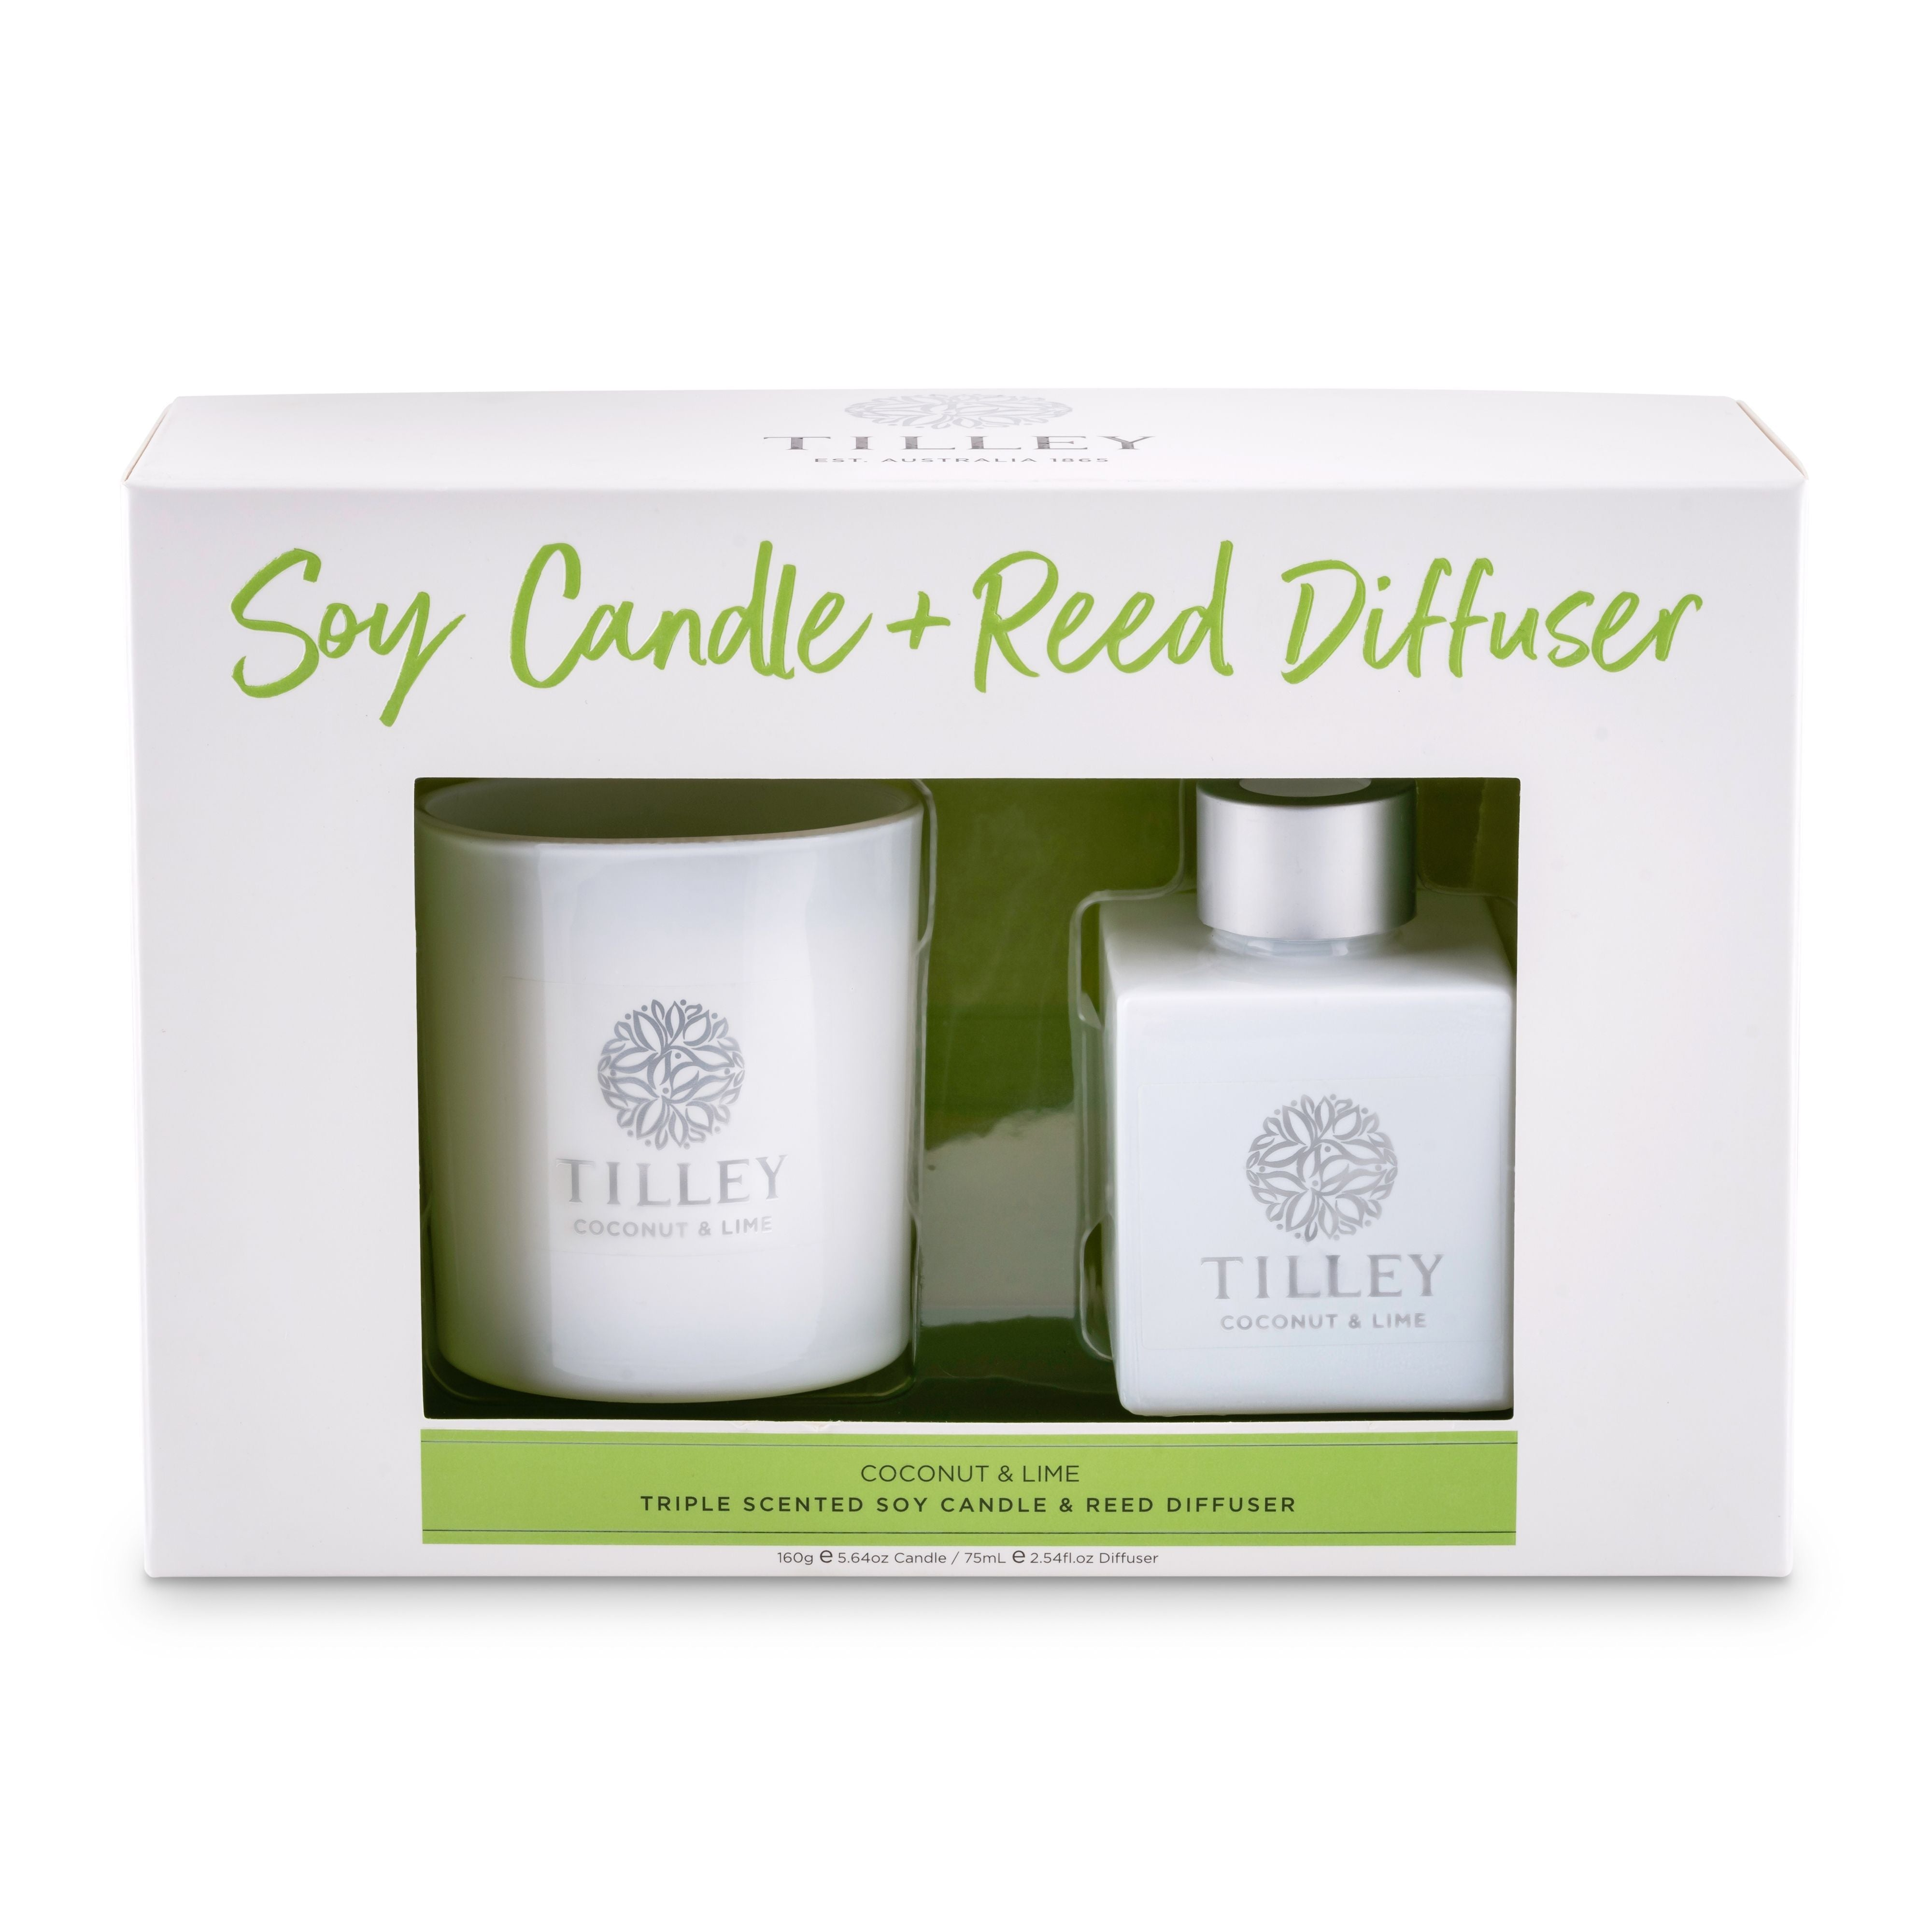 Tilley Candle & Reed Diffuser Gift Pack (160g Candle & 75mL Reed Diffuser)